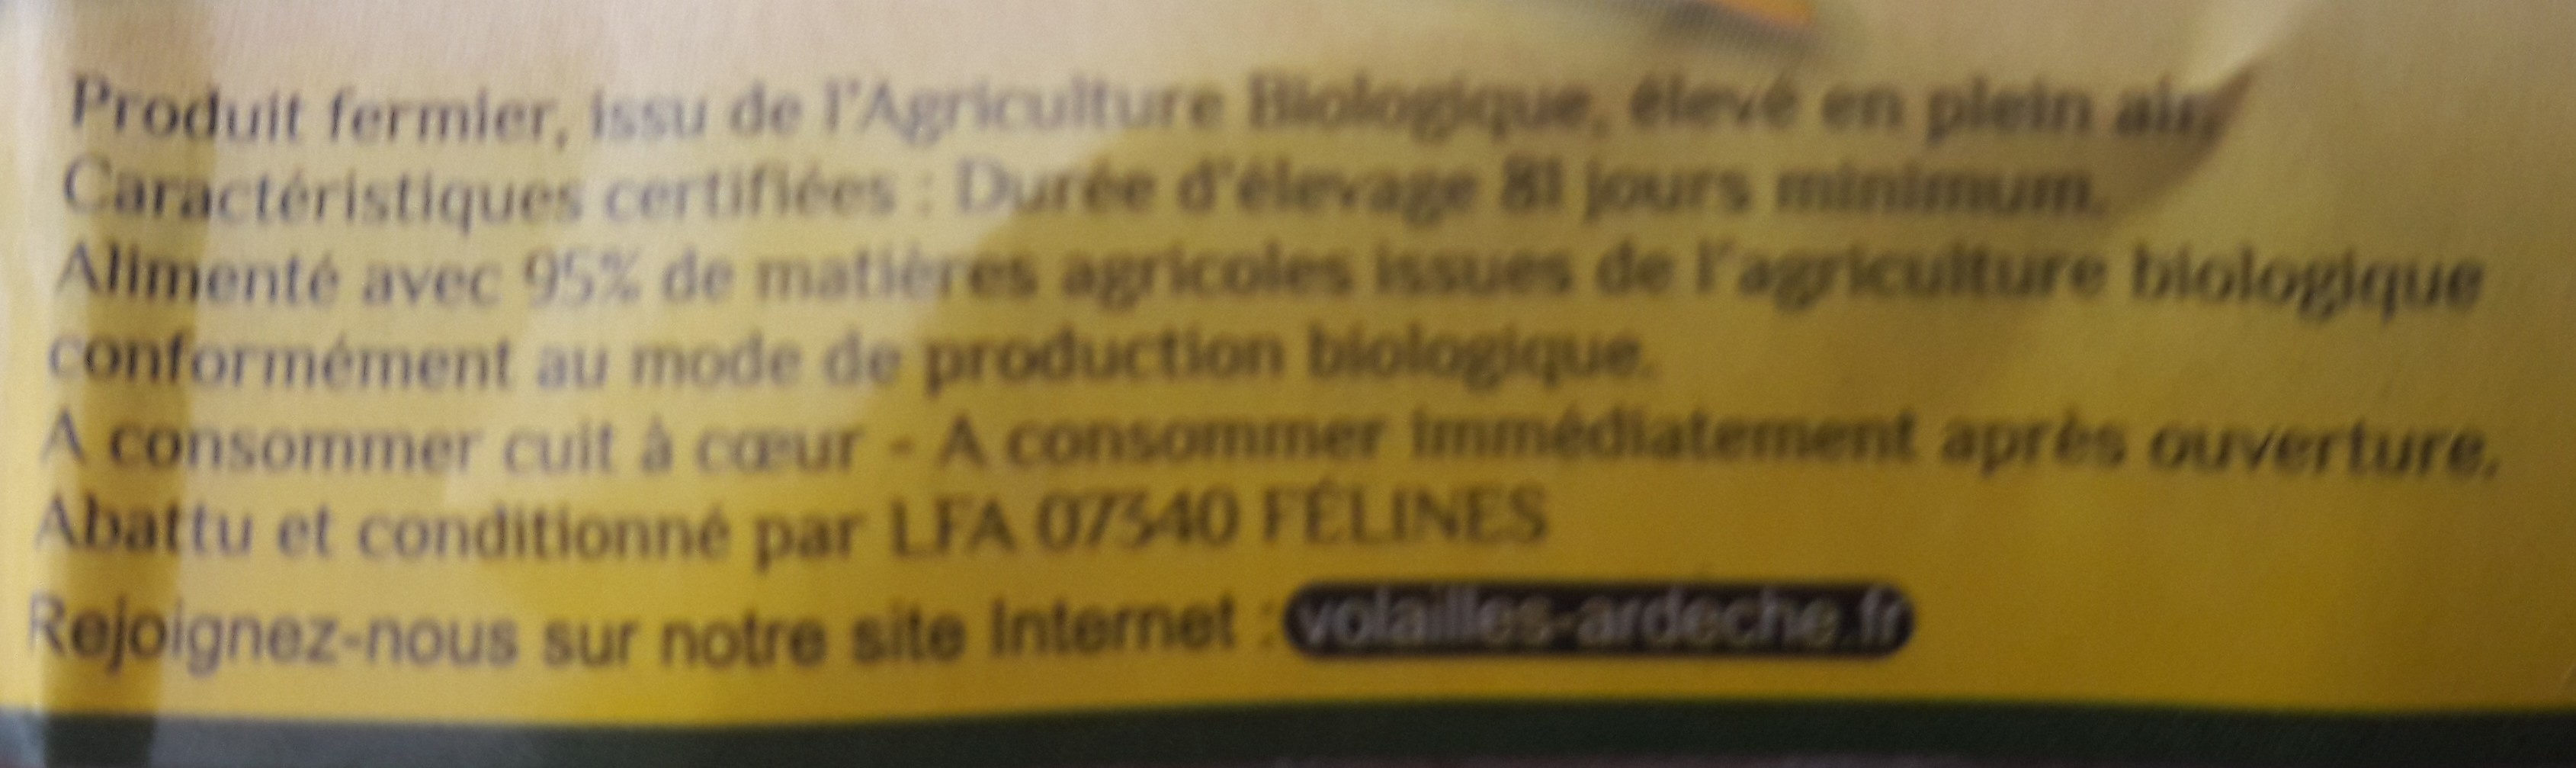 2 cuisses bio - Ingredients - fr